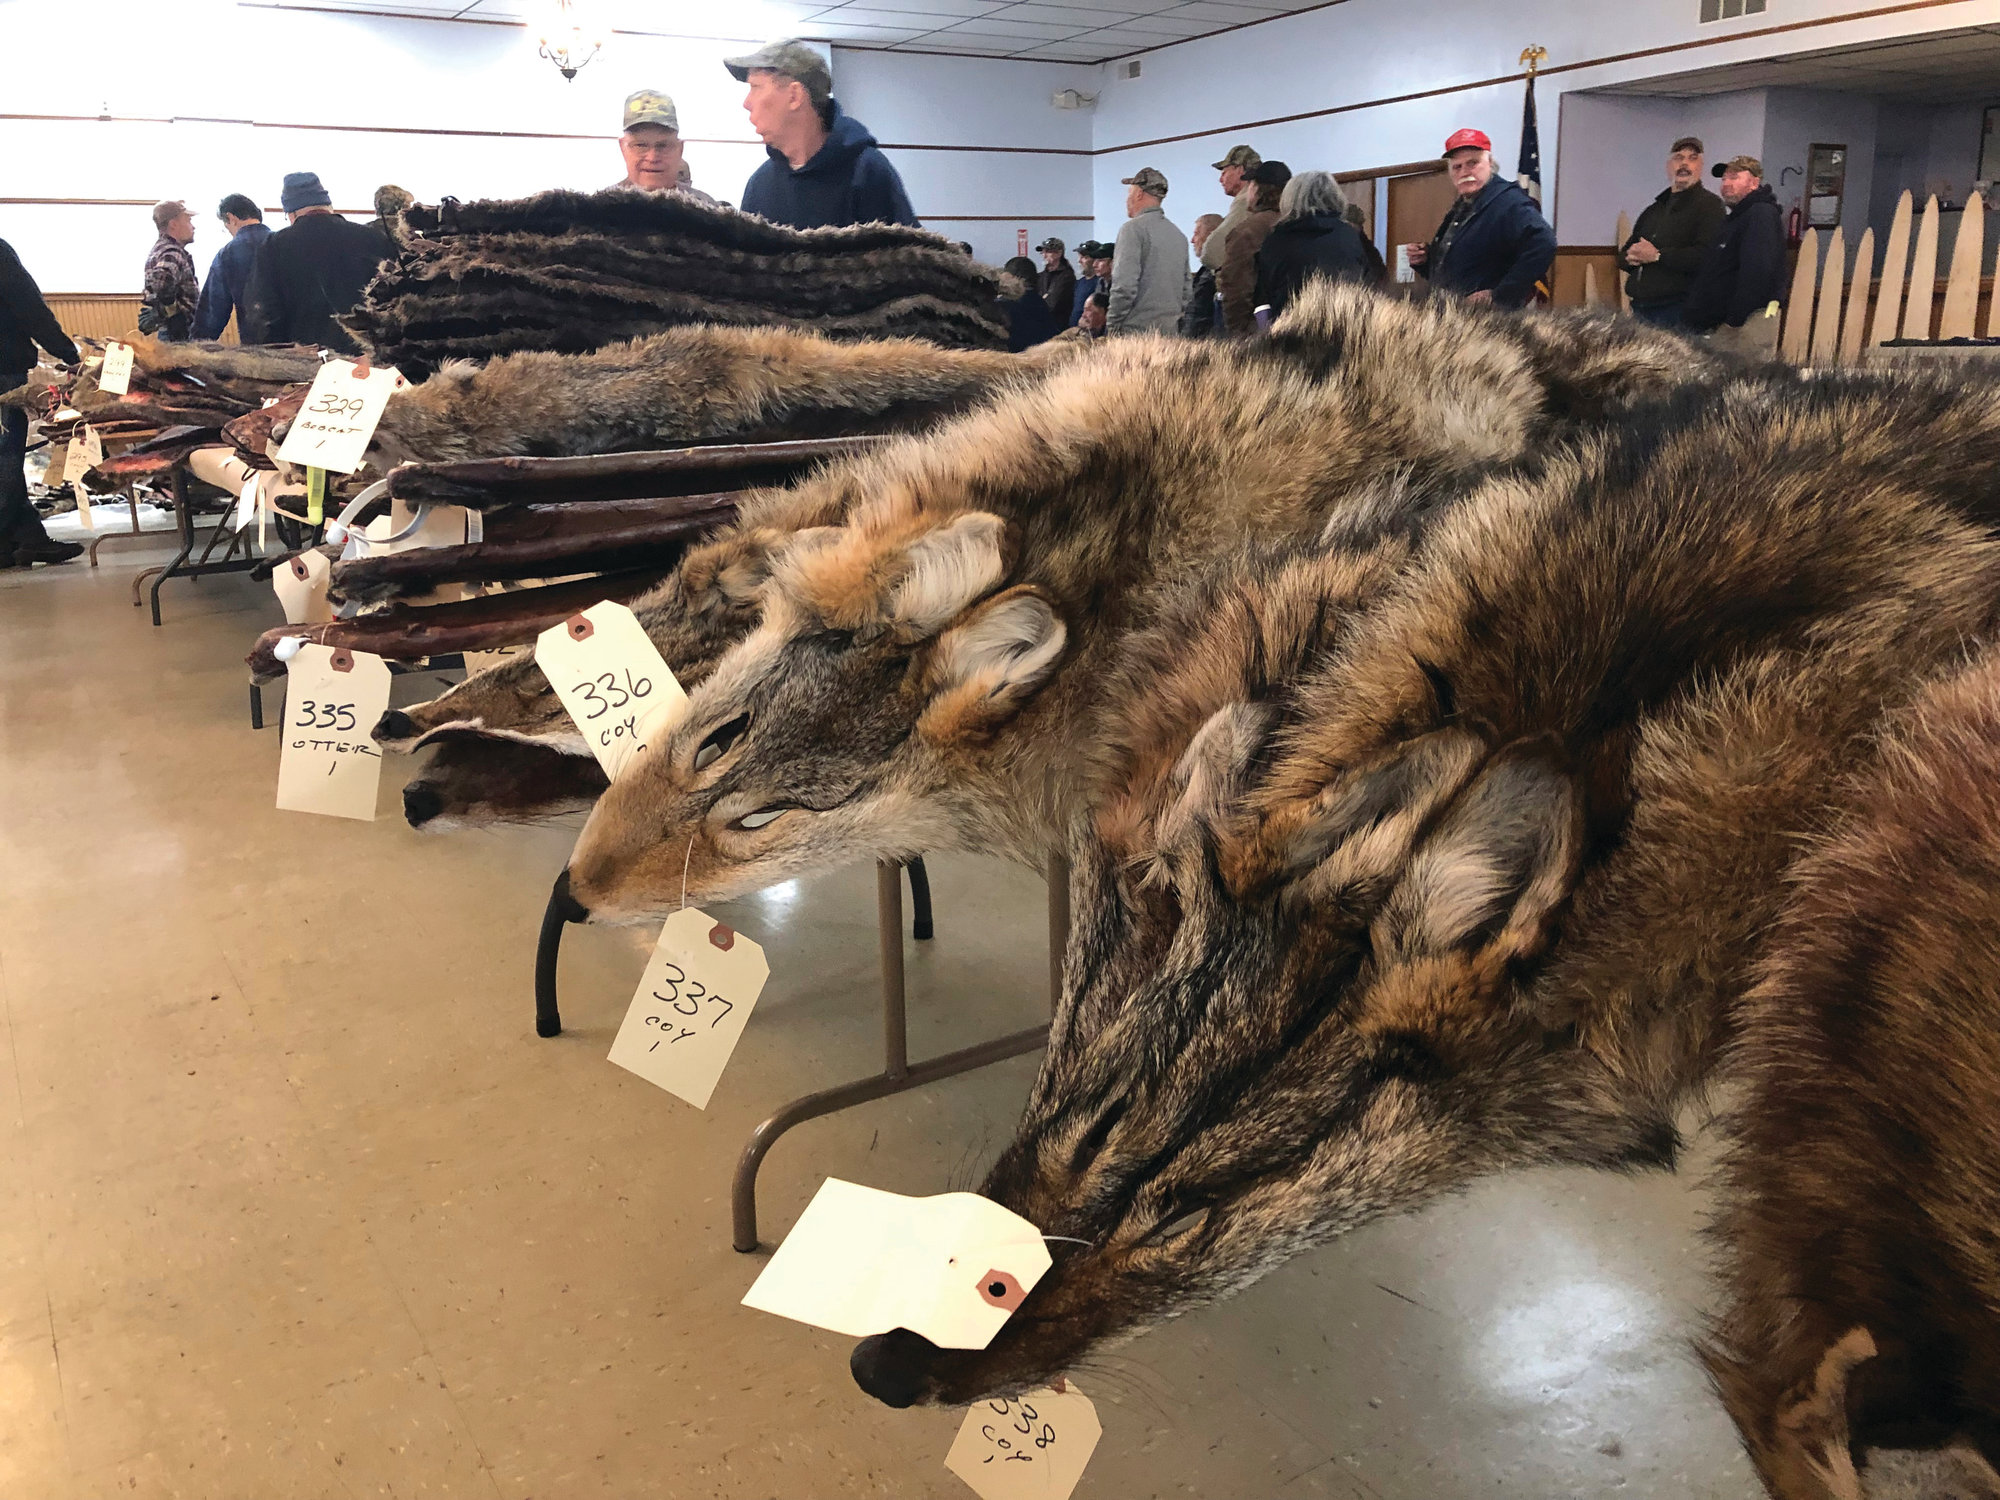 cba52721df7 Coyote fur in big demand thanks to popular parkas   The Sumter Item